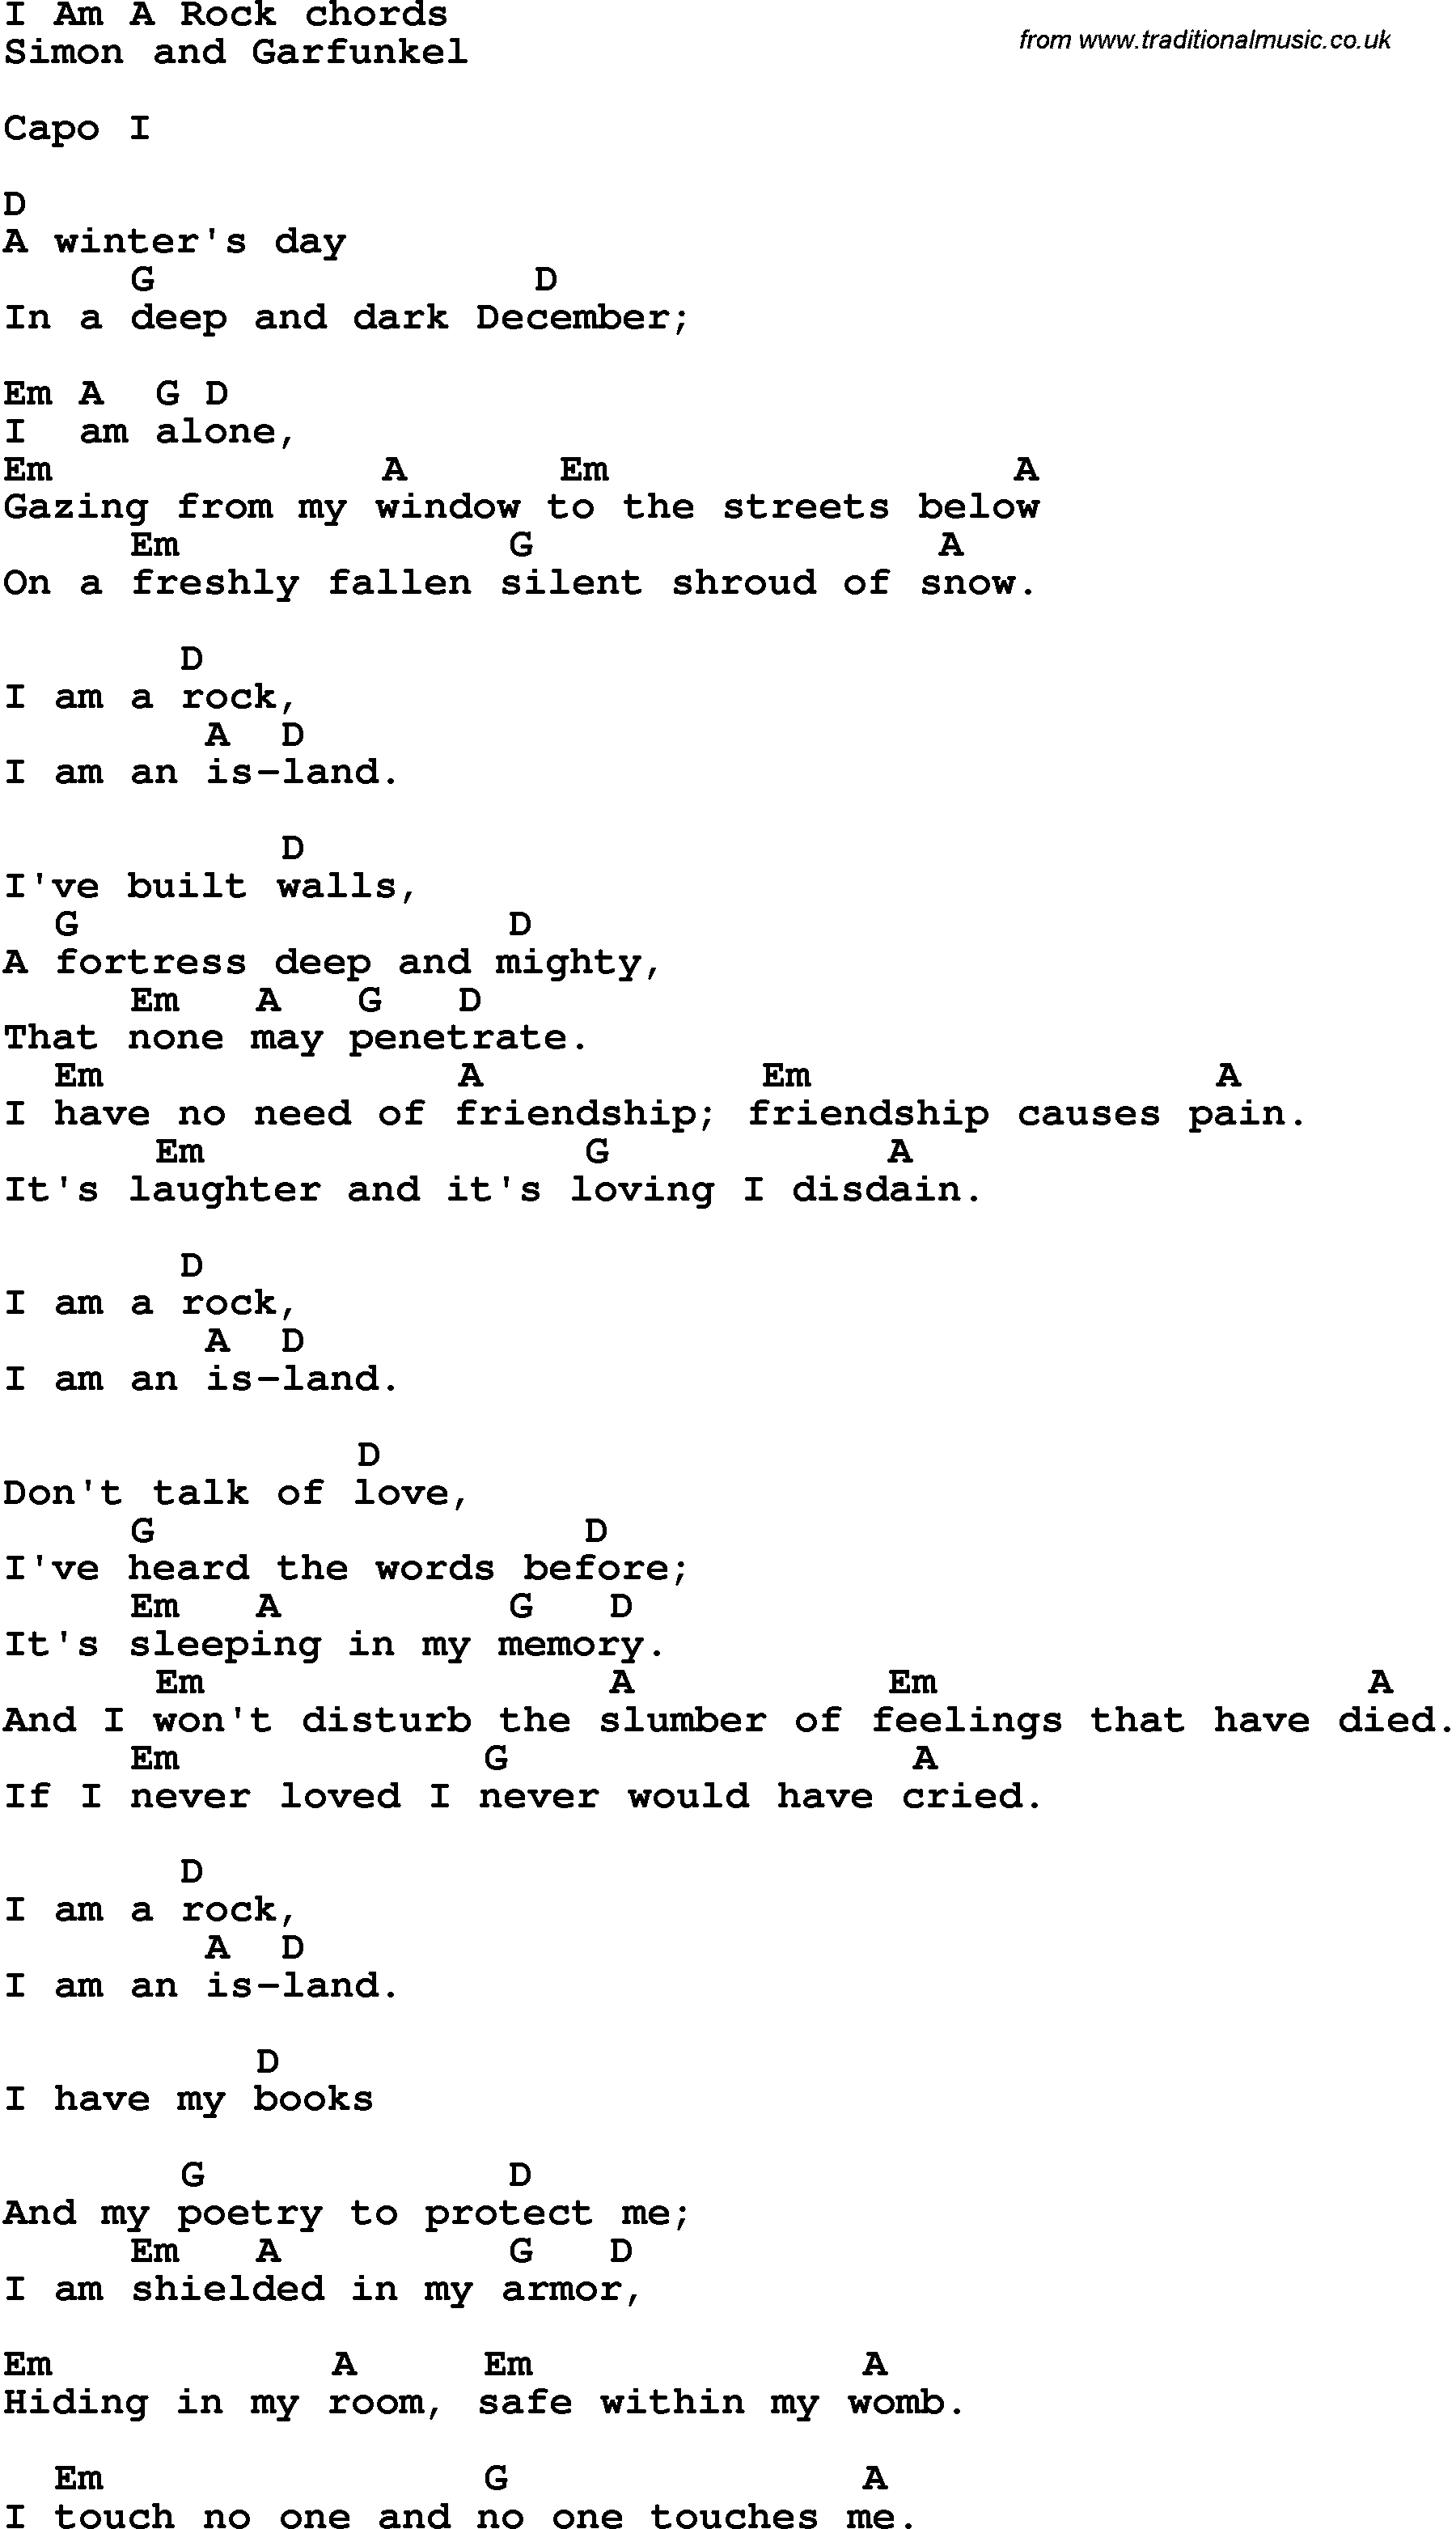 Song Lyrics With Guitar Chords For I Am A Rock